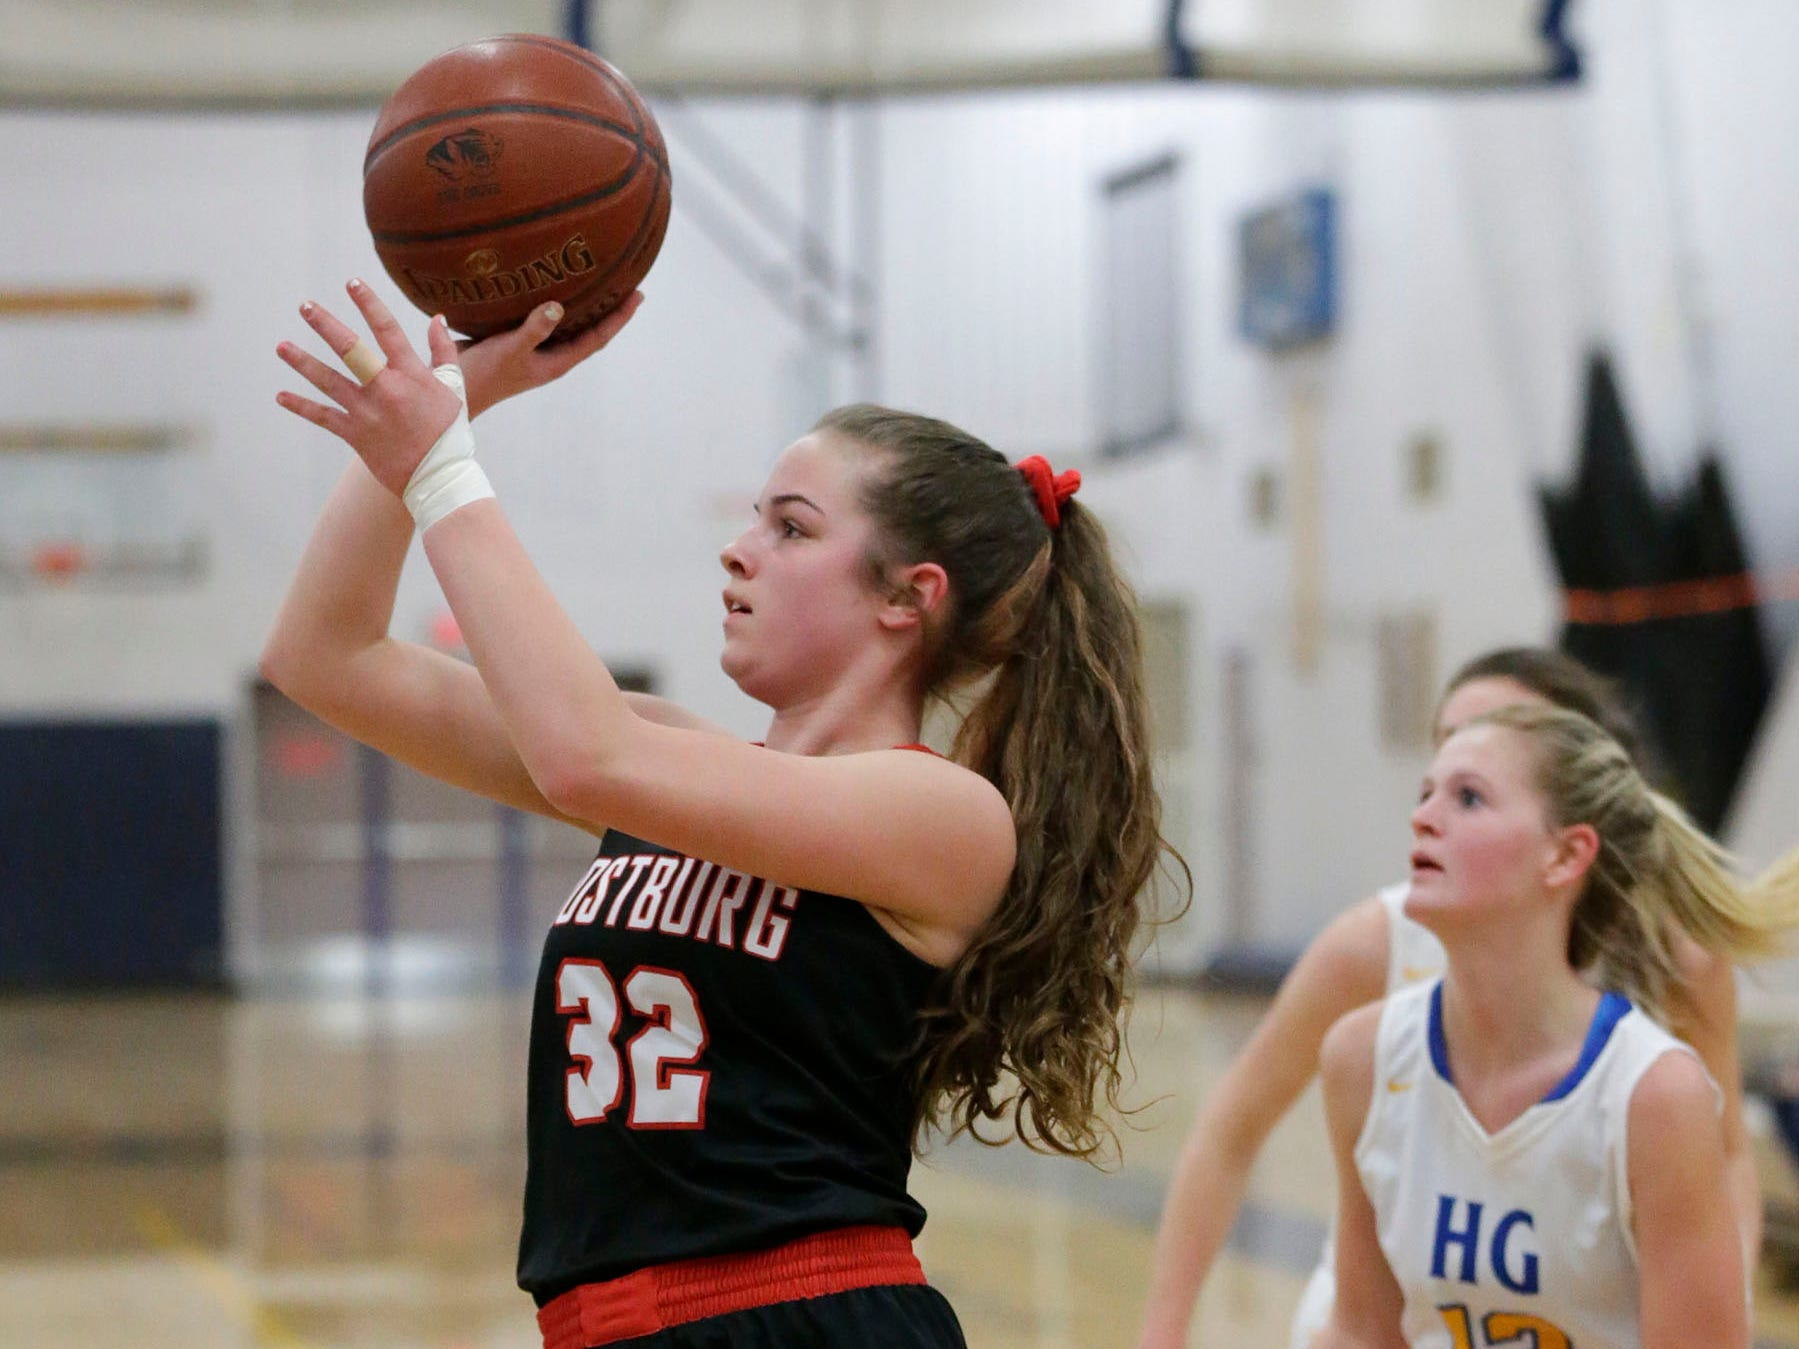 Oostburg's Cambell Van Ess (32) launches a shot against Howards Grove, Saturday, February 23, 2019, at Howards Grove, Wis.